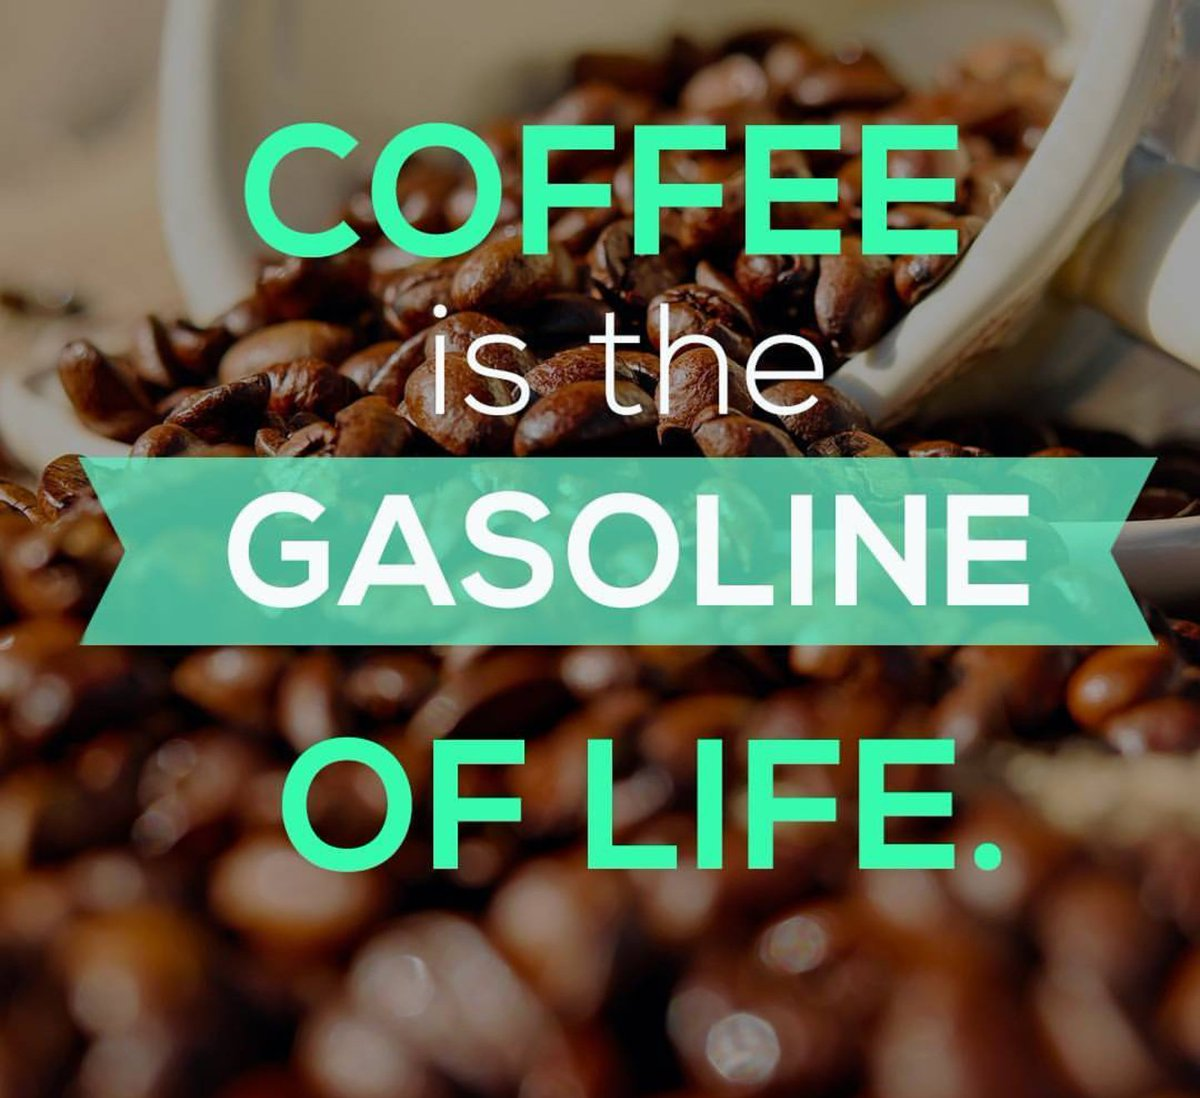 Who needs a car when they&#39;ve got coffee? That will give you all the fuel you need to walk. #healthylife #love #coffee #coffeeaddicts #coffeelovers #goodmorning #workout<br>http://pic.twitter.com/mwP9jWt9kz